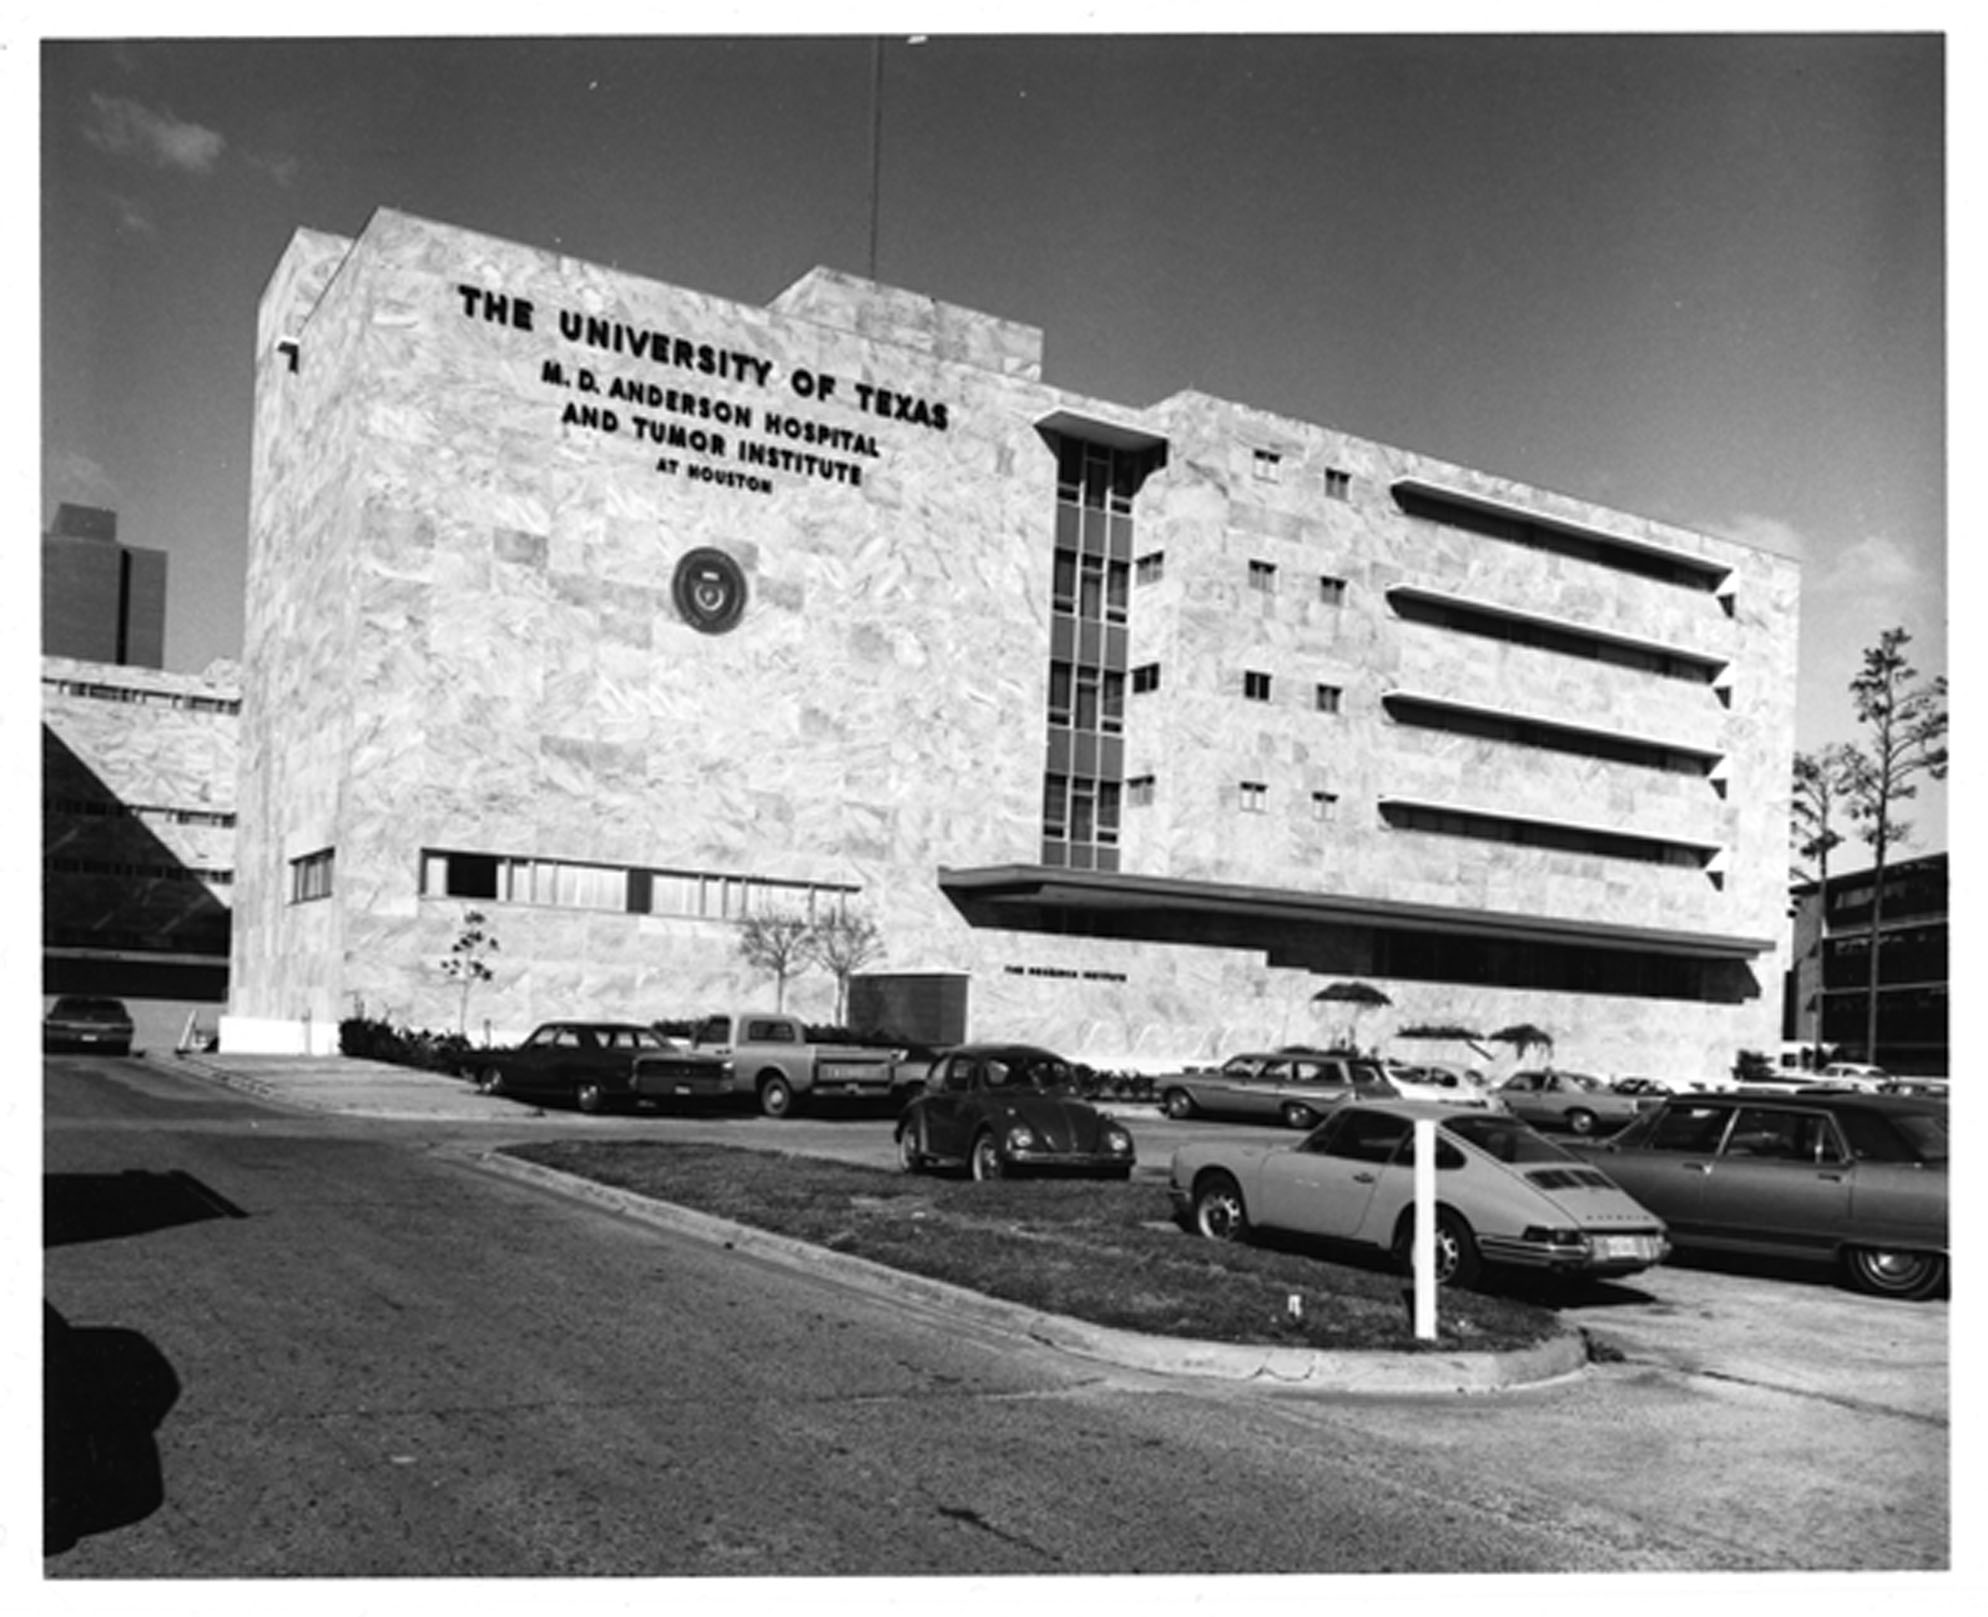 MD Anderson original Main Building